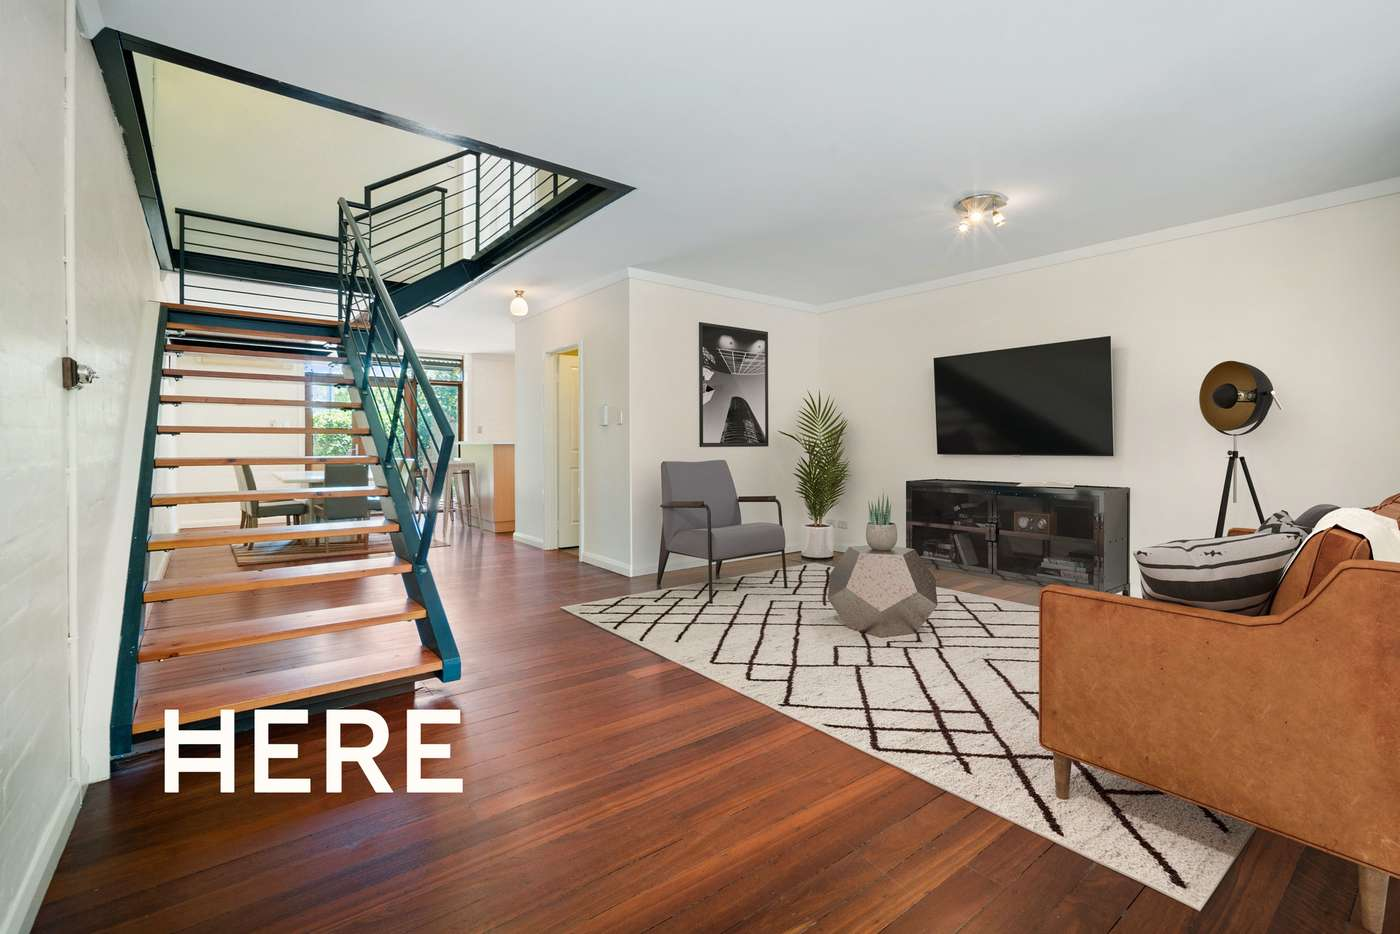 Main view of Homely townhouse listing, 37/177 Oxford Street, Leederville WA 6007